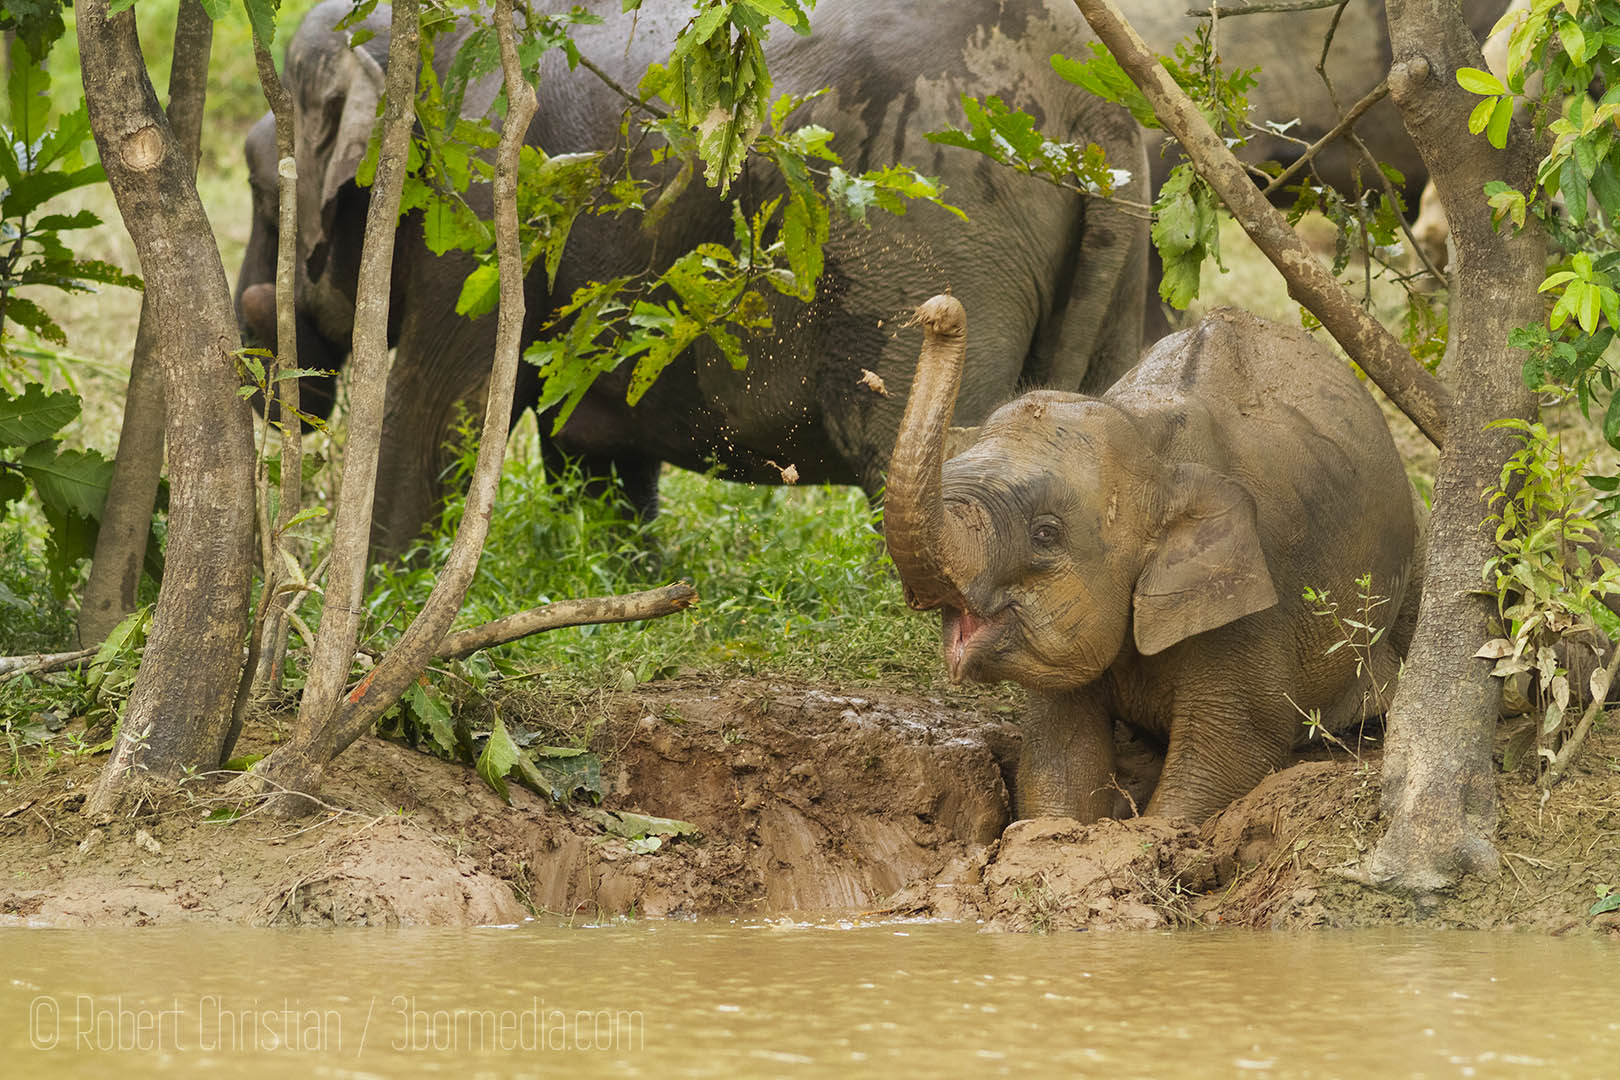 A young elephant playing in the mud on the banks of the Tenegang tributary.